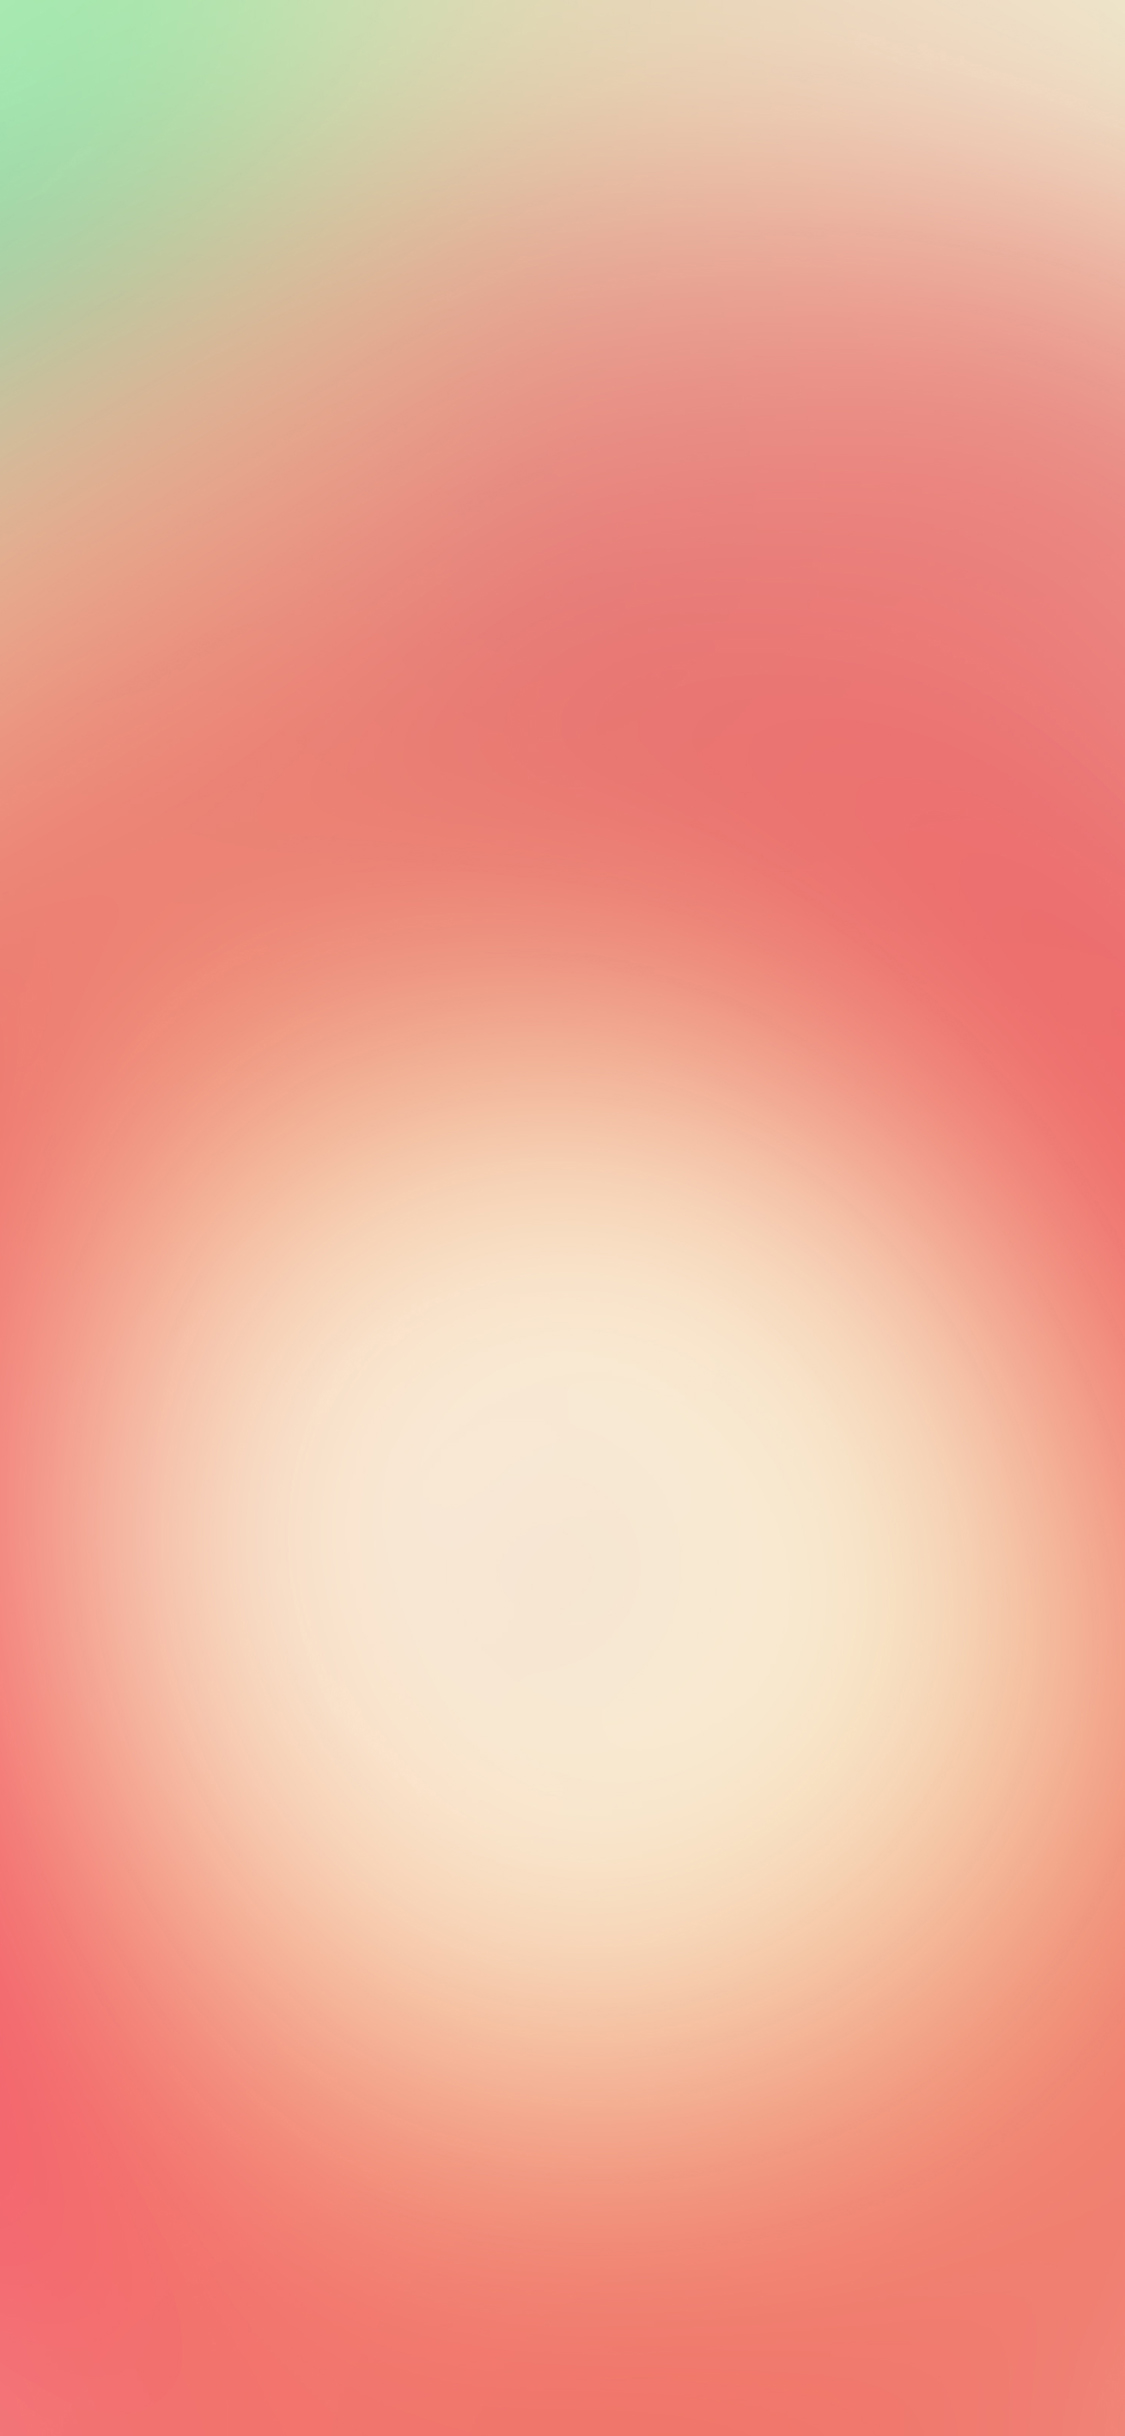 iPhoneXpapers.com-Apple-iPhone-wallpaper-sb49-wallpaper-galaxy-eye-center-gren-blur